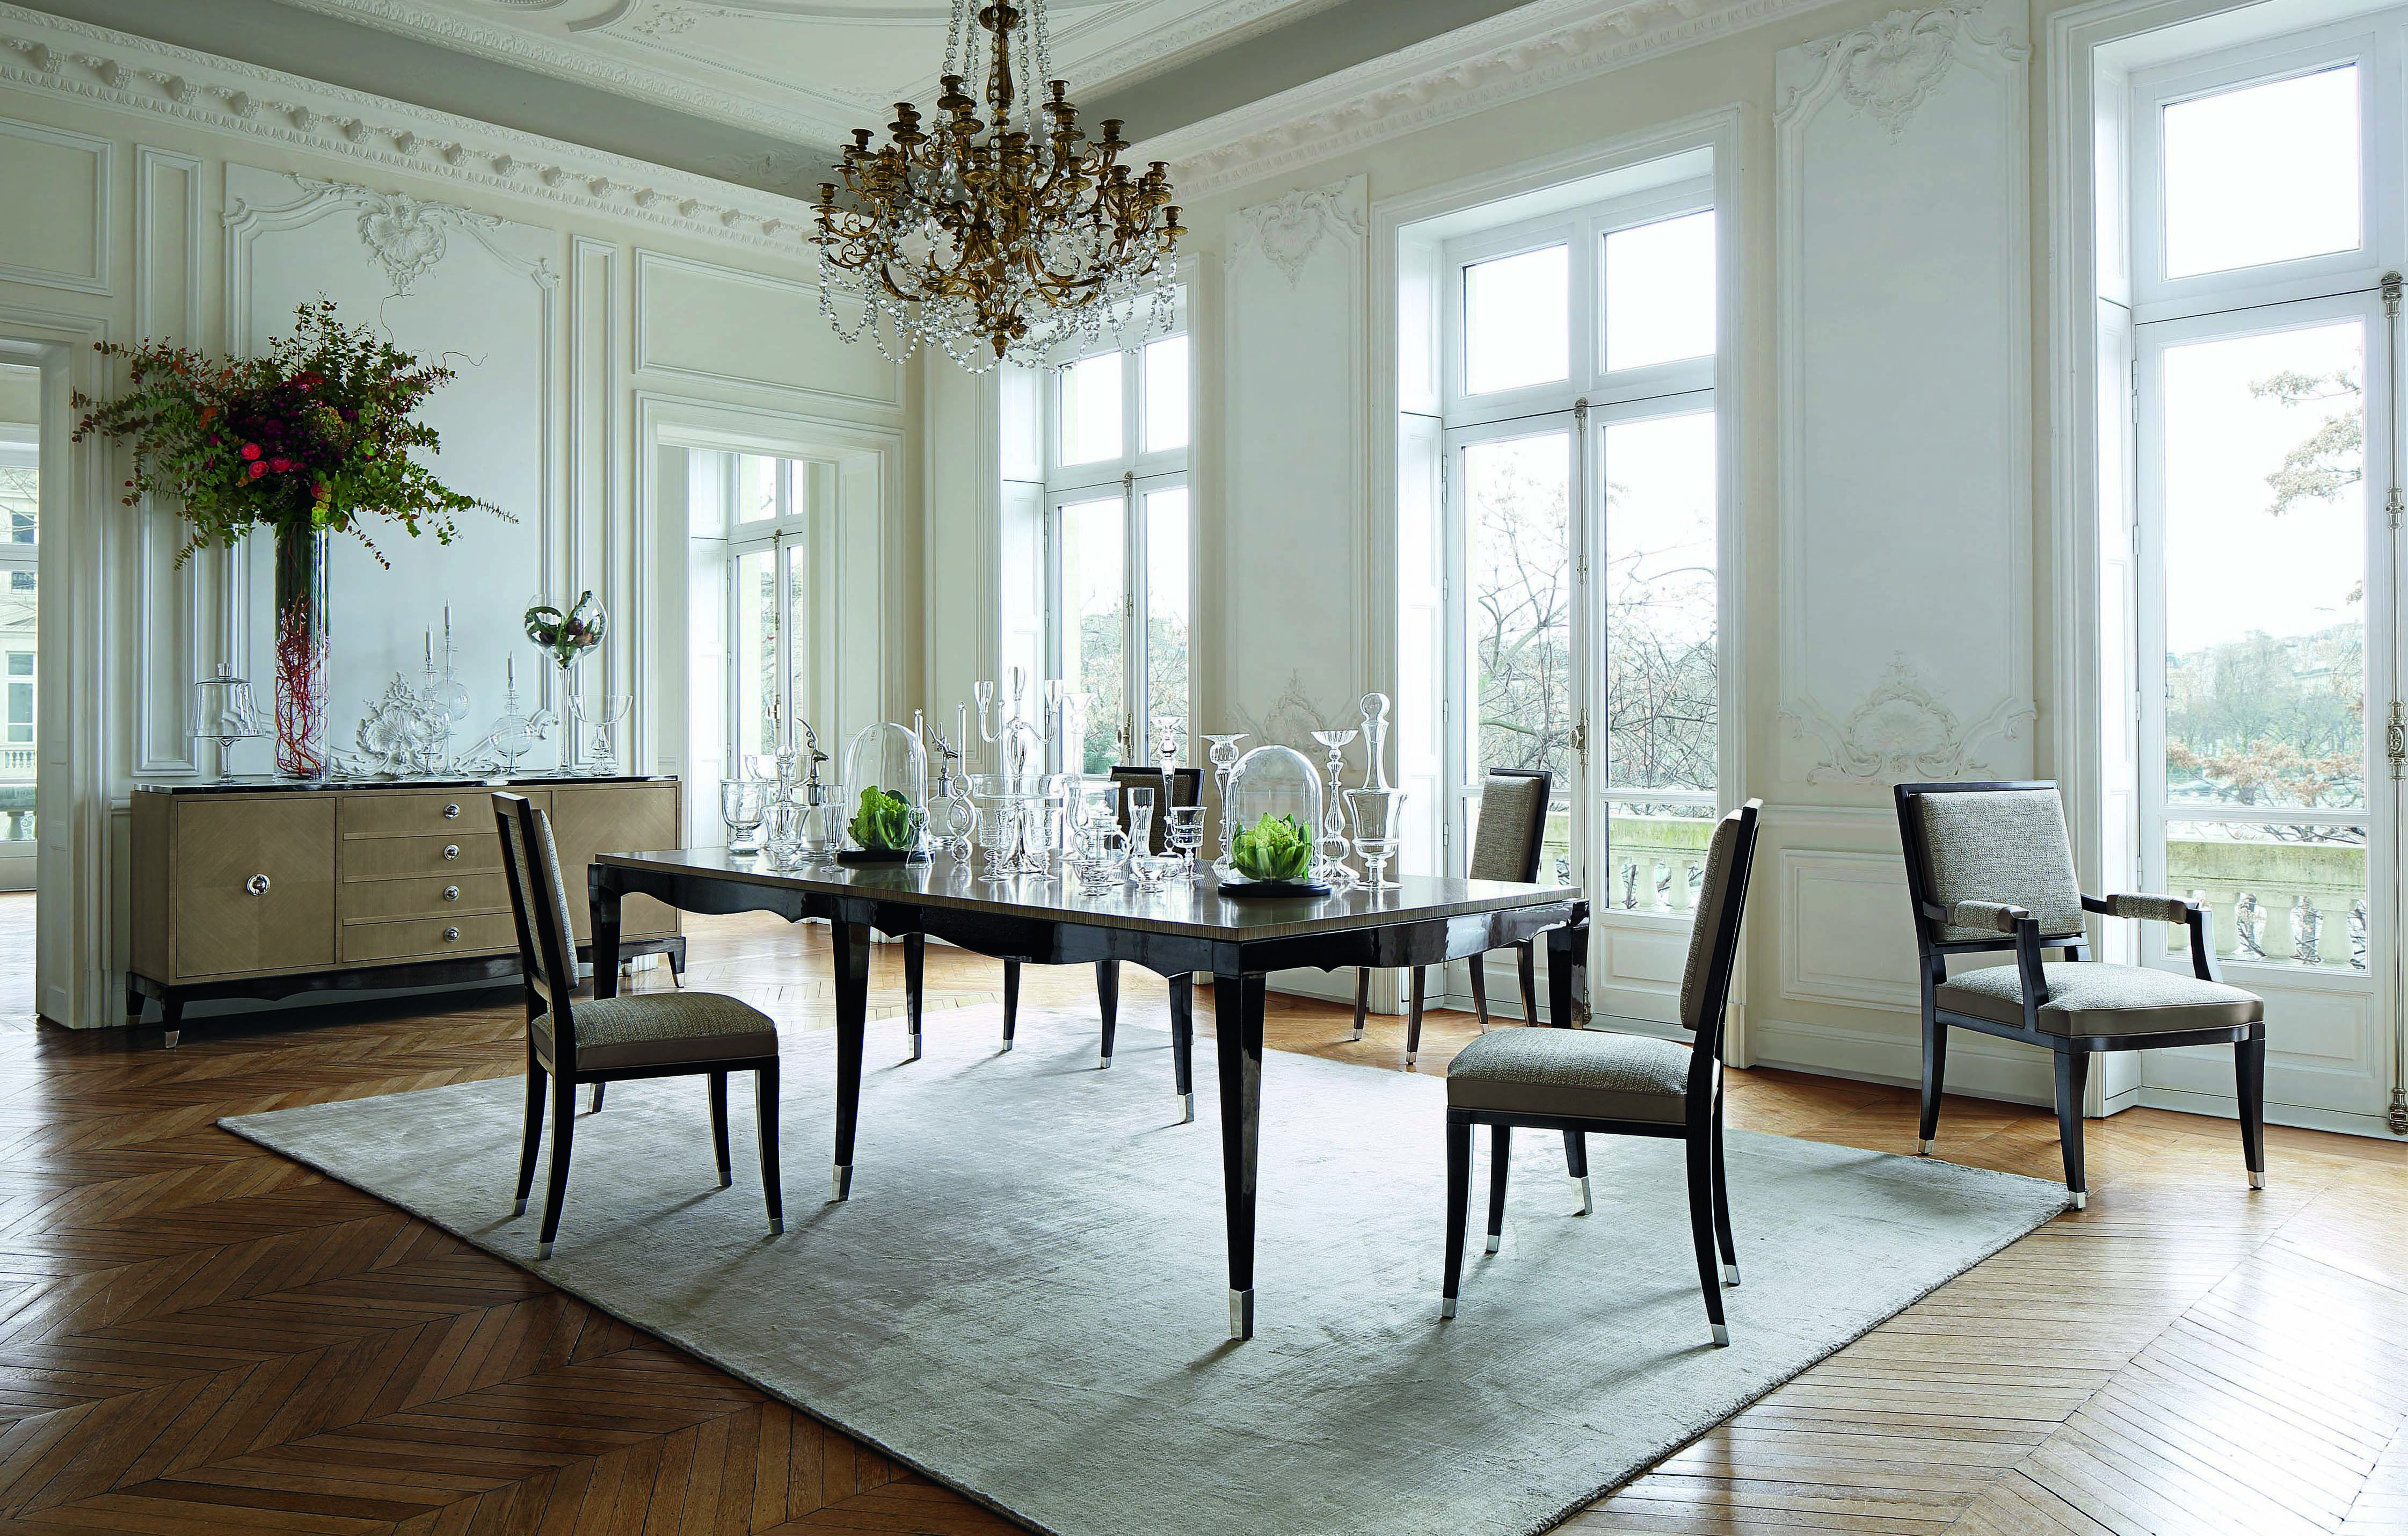 Roche Bobois GRAND HOTEL Dining Table Design Pierre Dubois And - Hotel dining room furniture